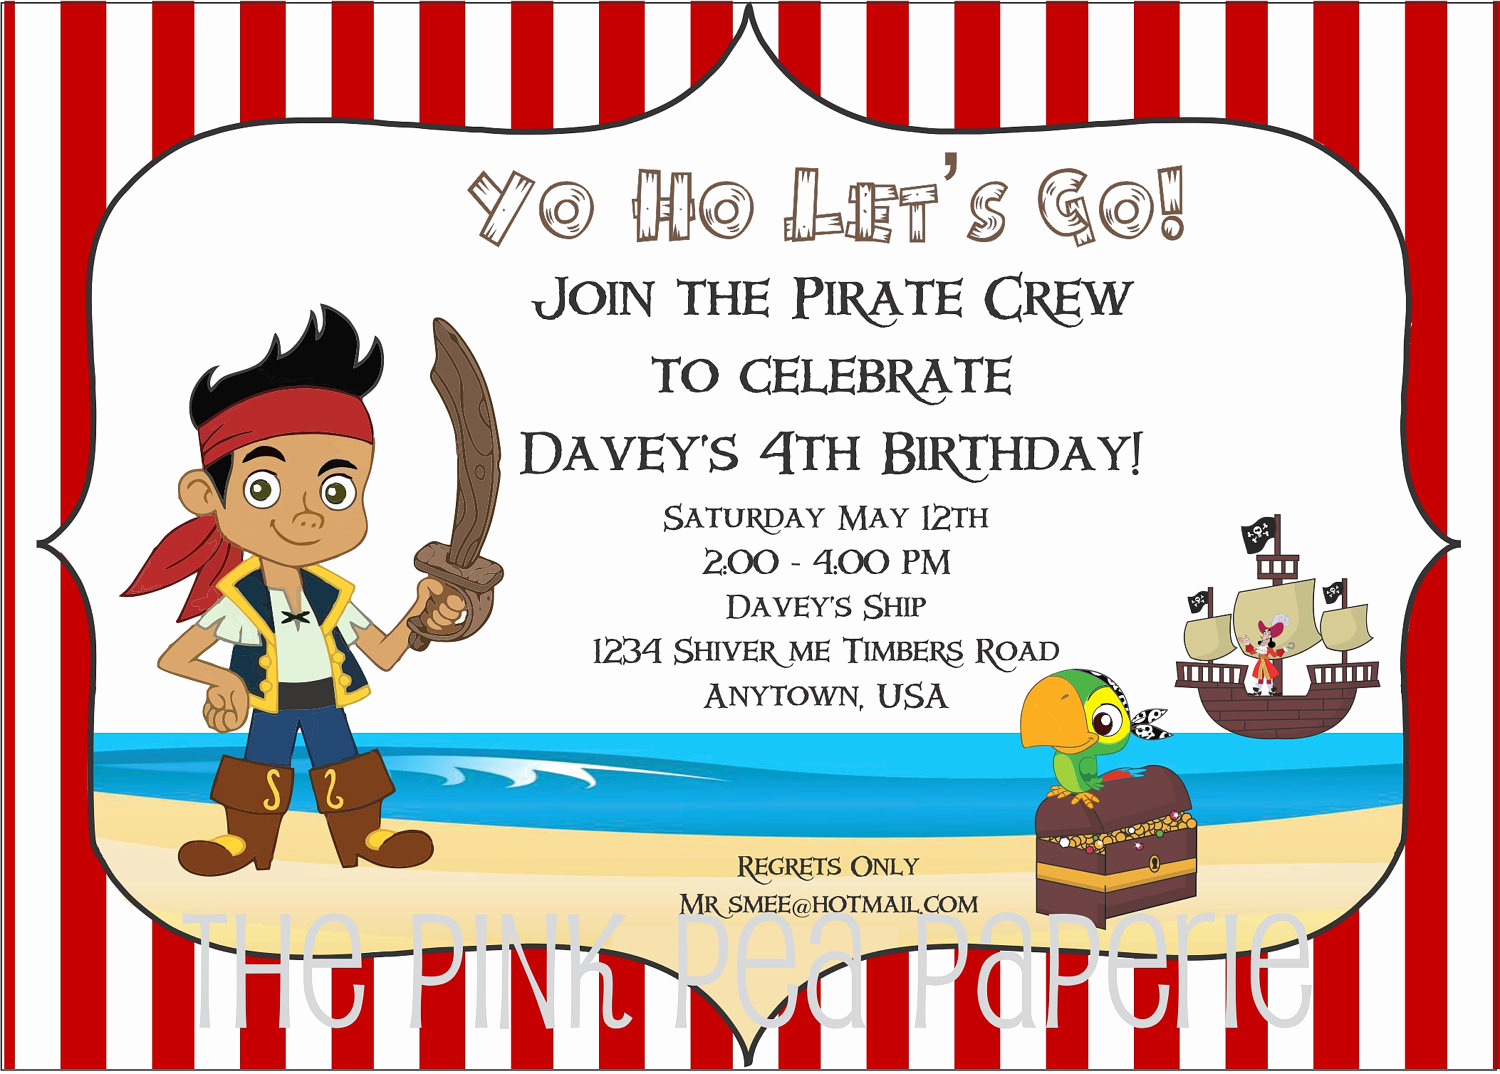 Free Pirate Invitation Template Inspirational Jake and the Neverland Pirates Birthday Invitations – Free